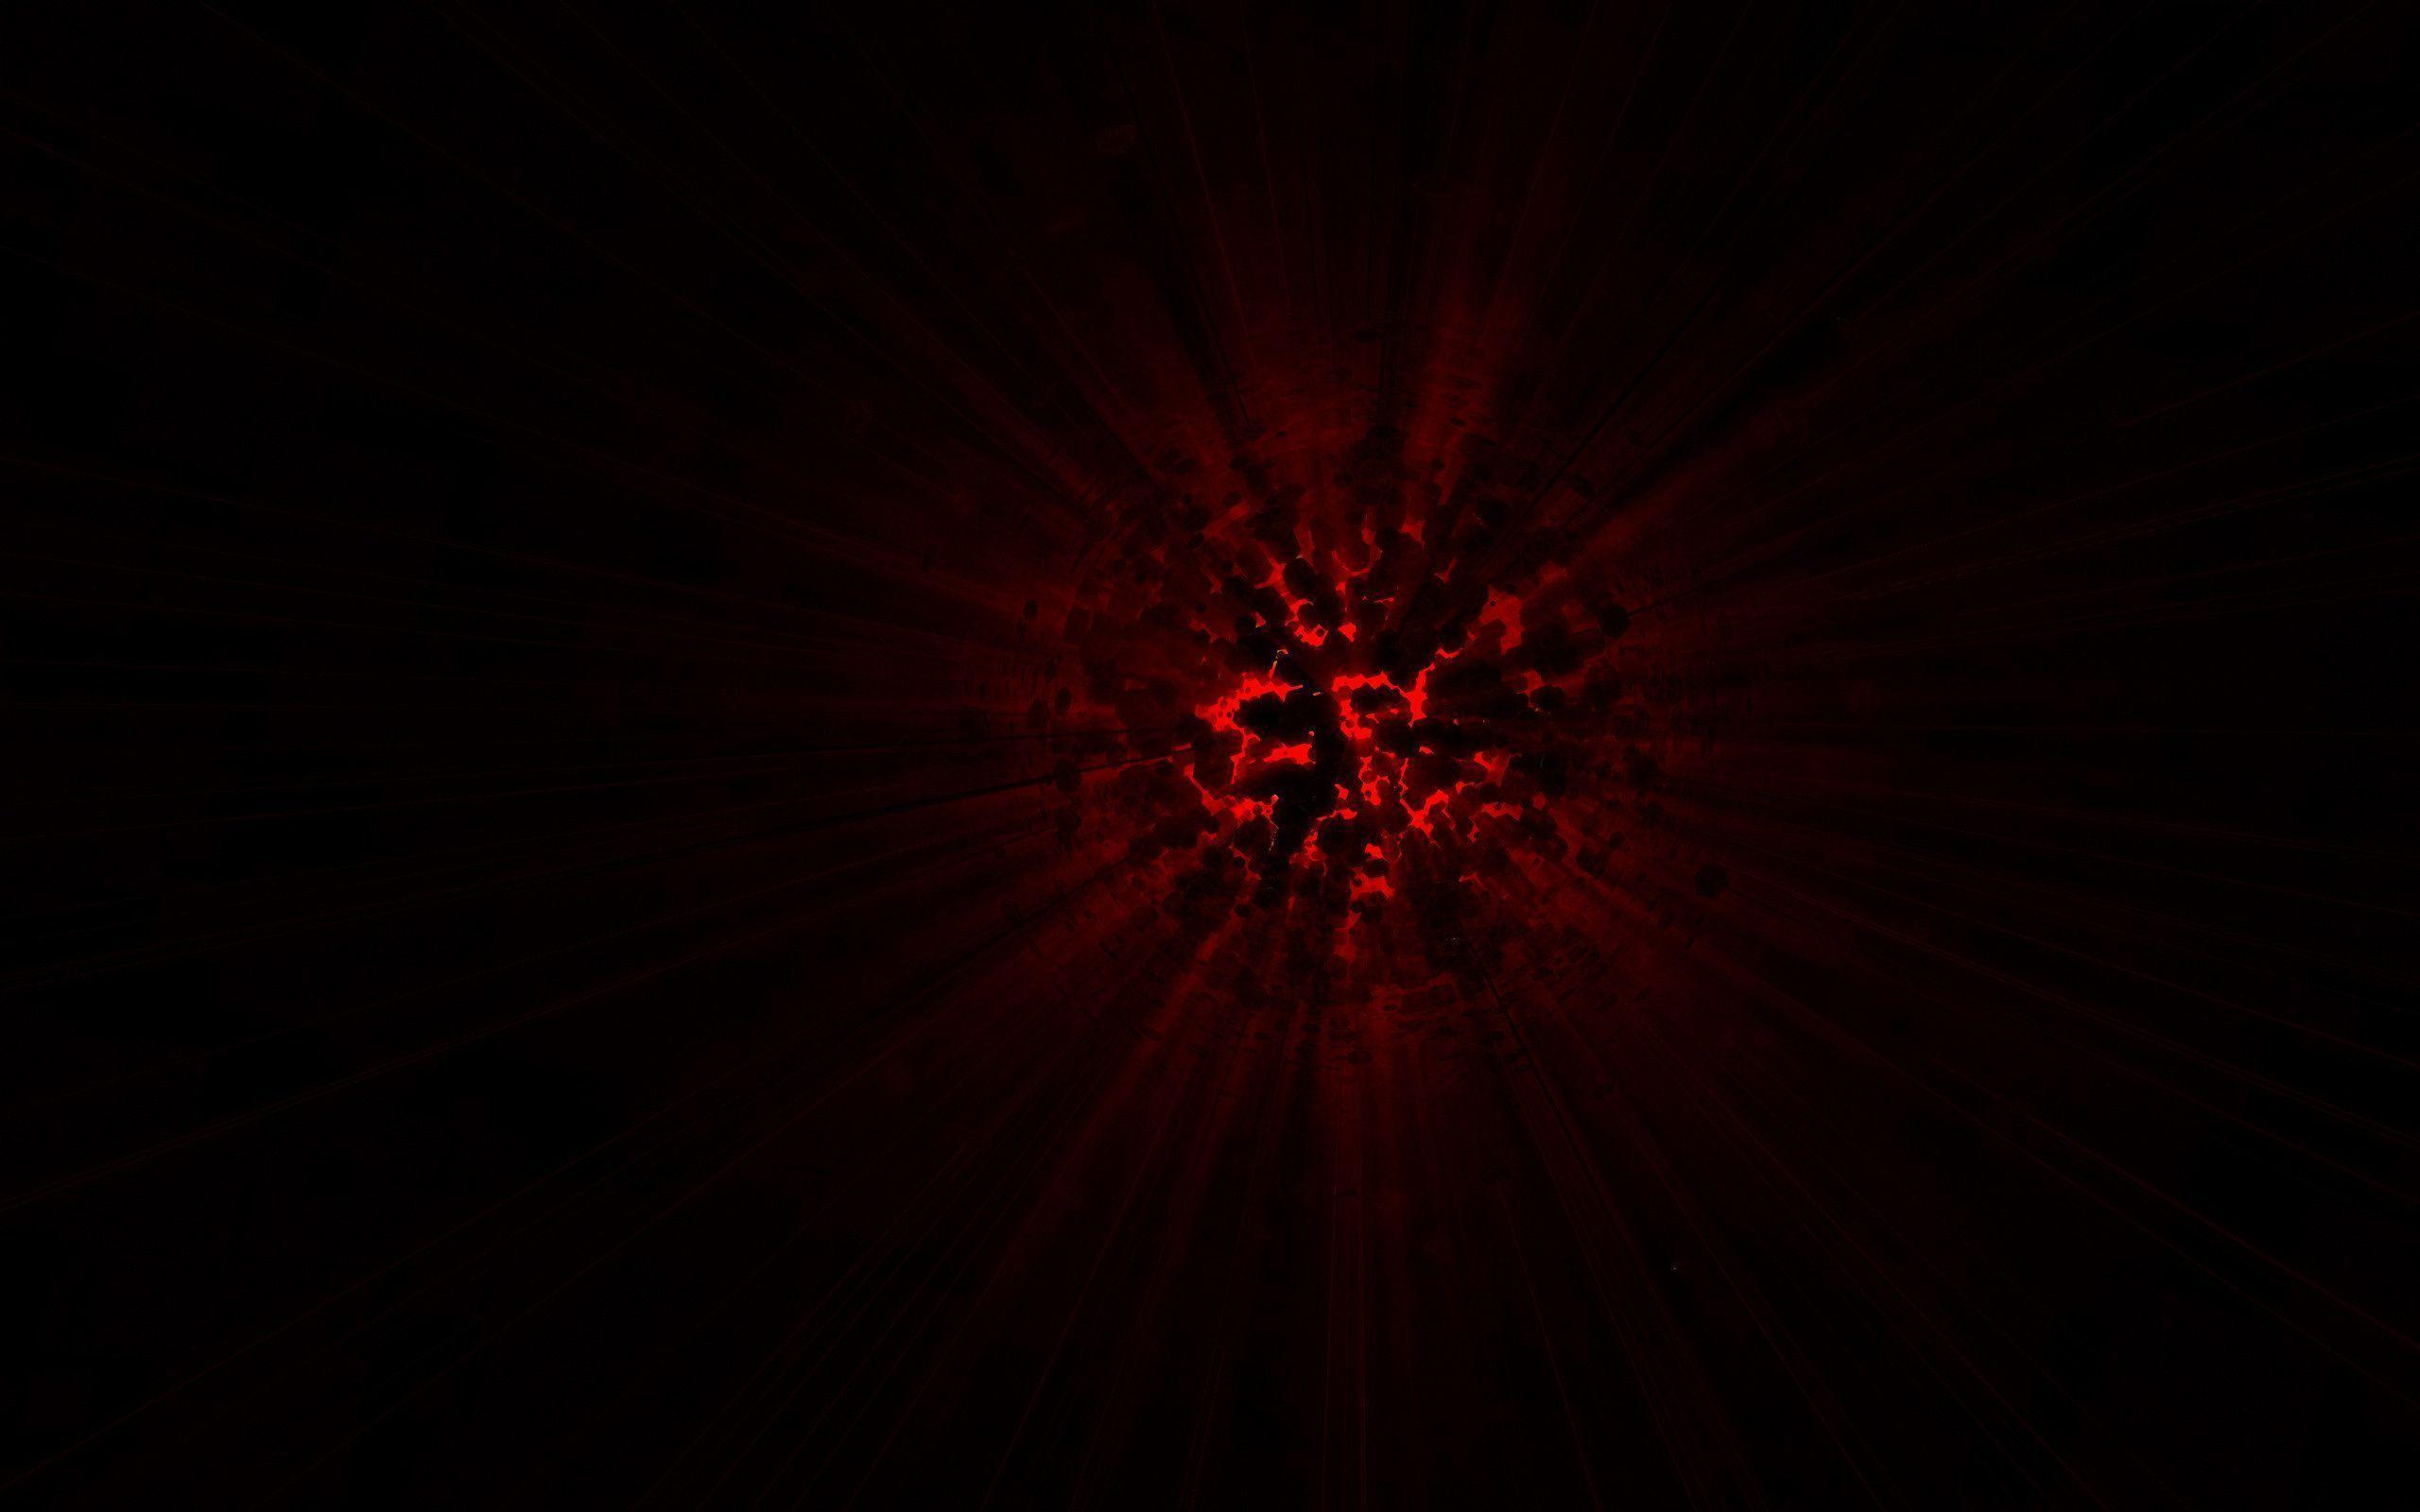 Black Cool Backgrounds - Wallpaper Cave